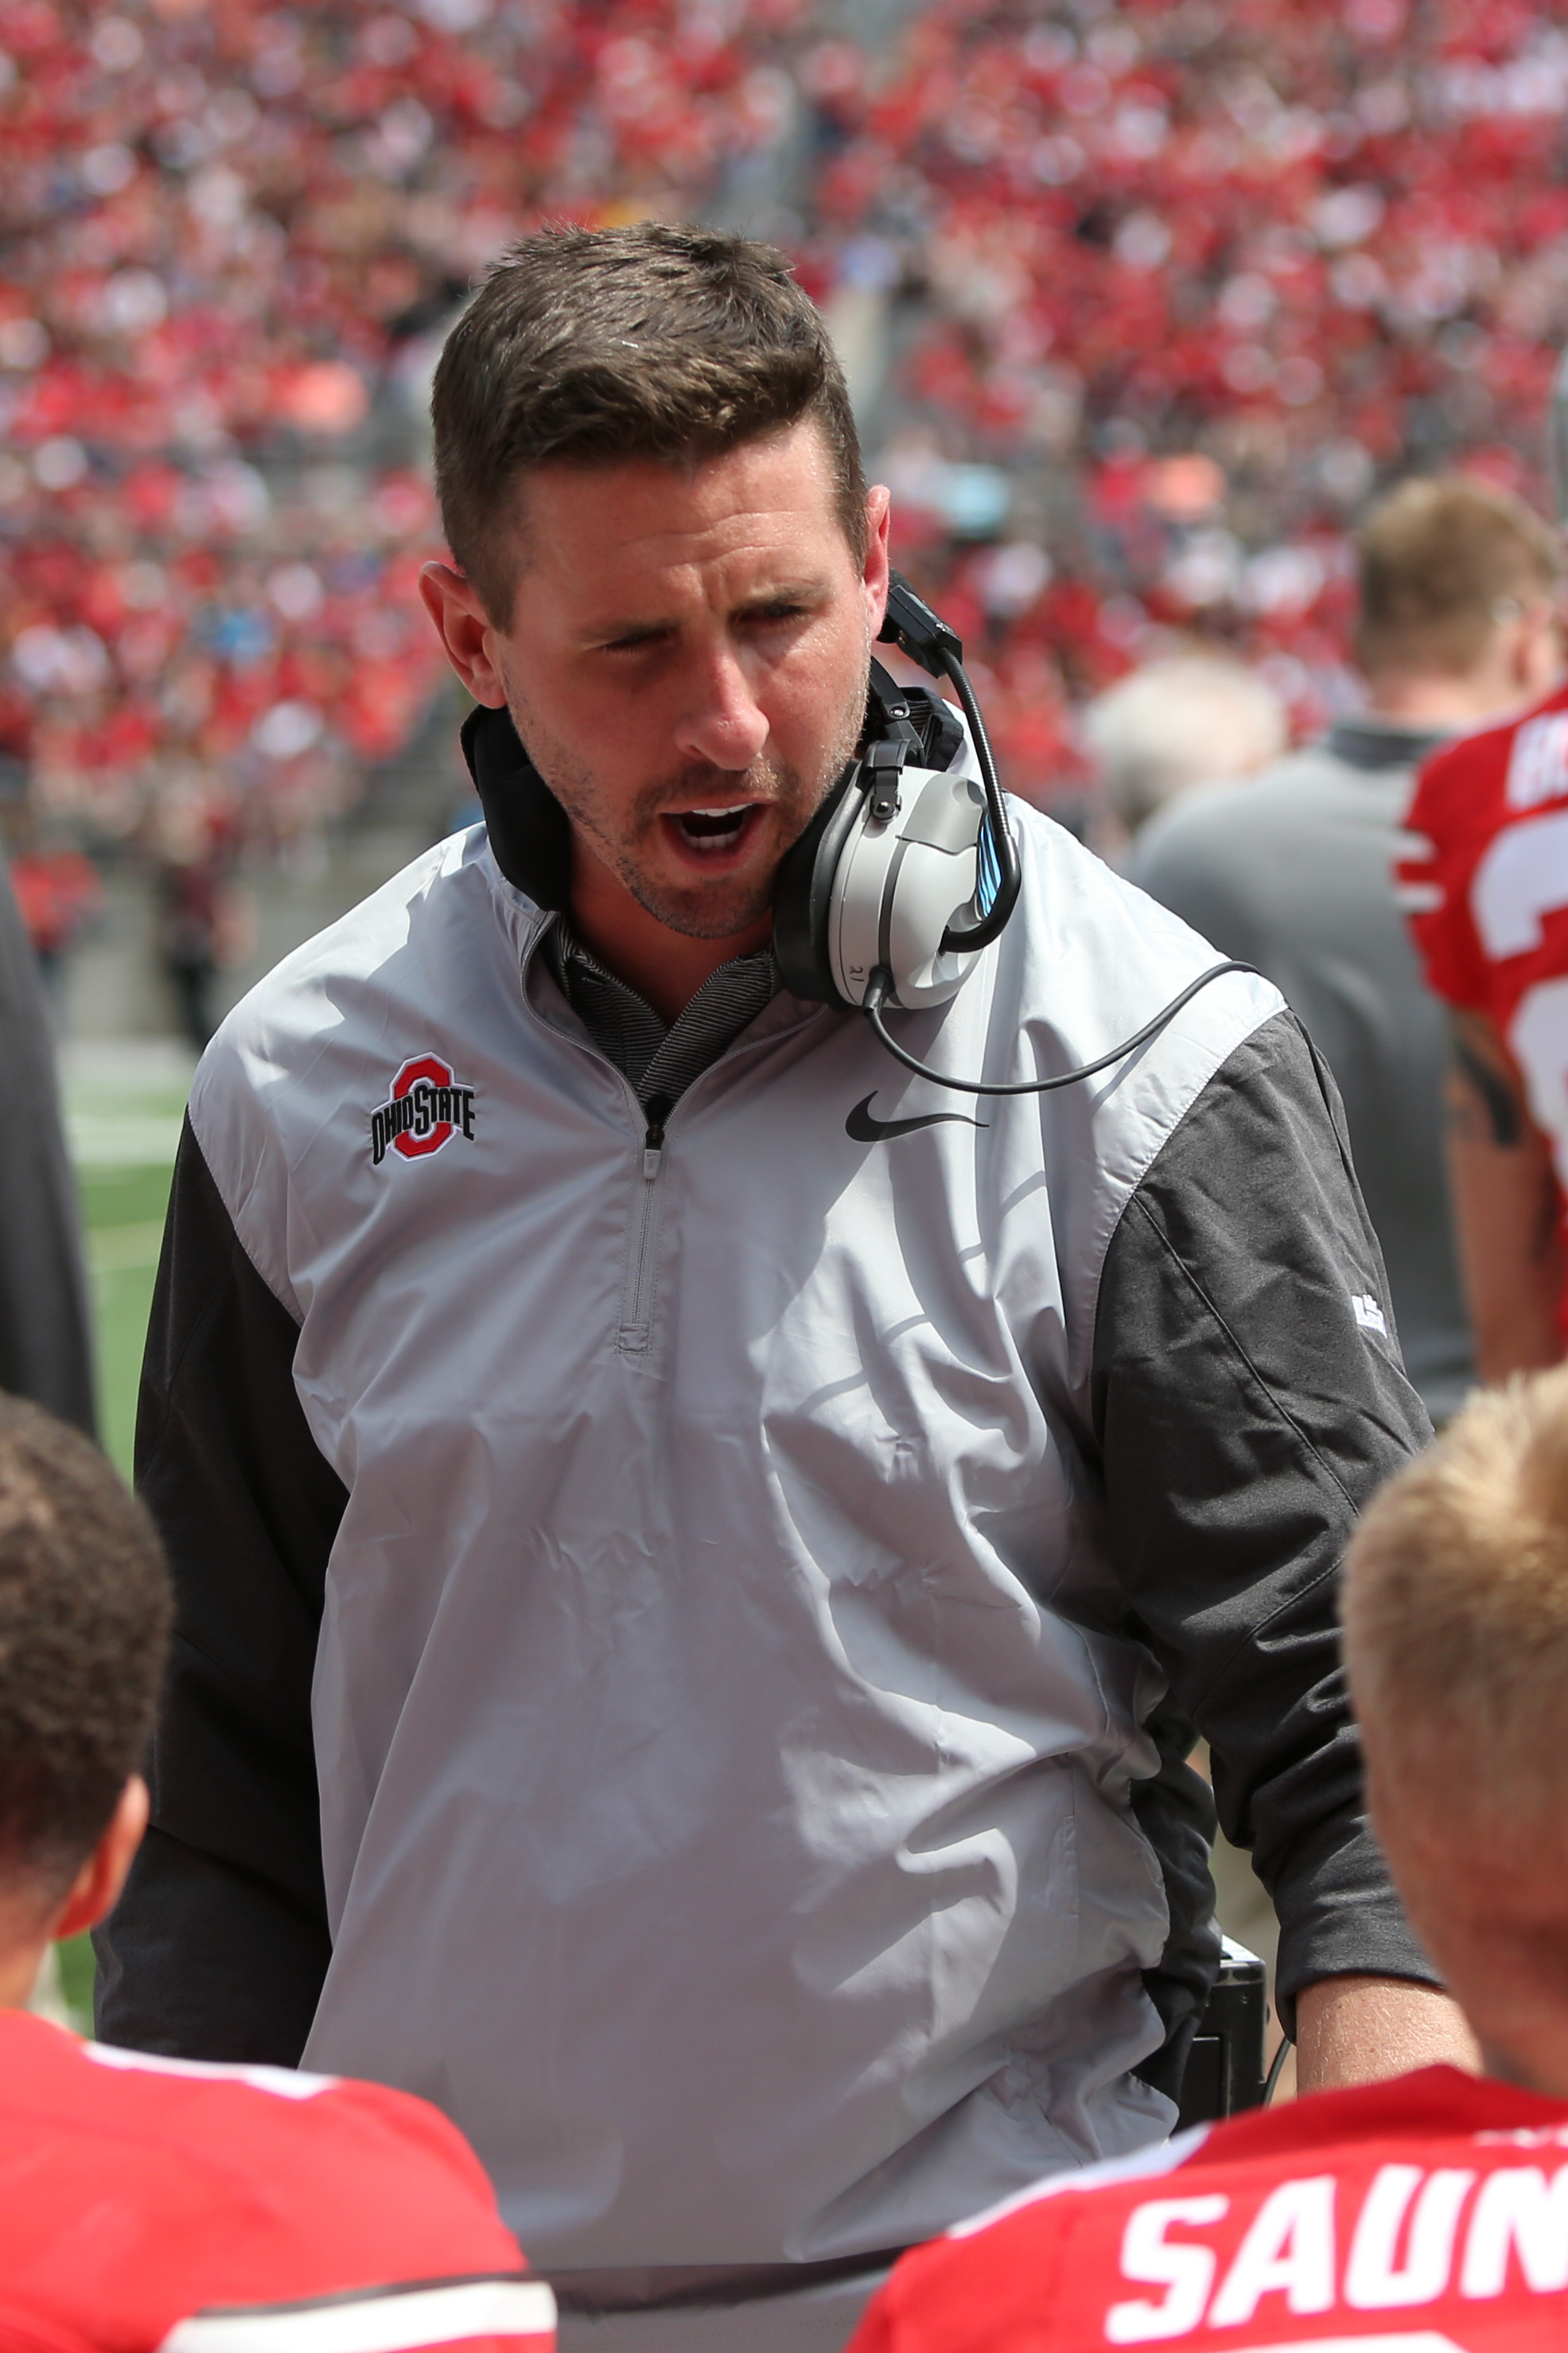 OSU Already Has A Ready-Made Candidate To Replace Smith